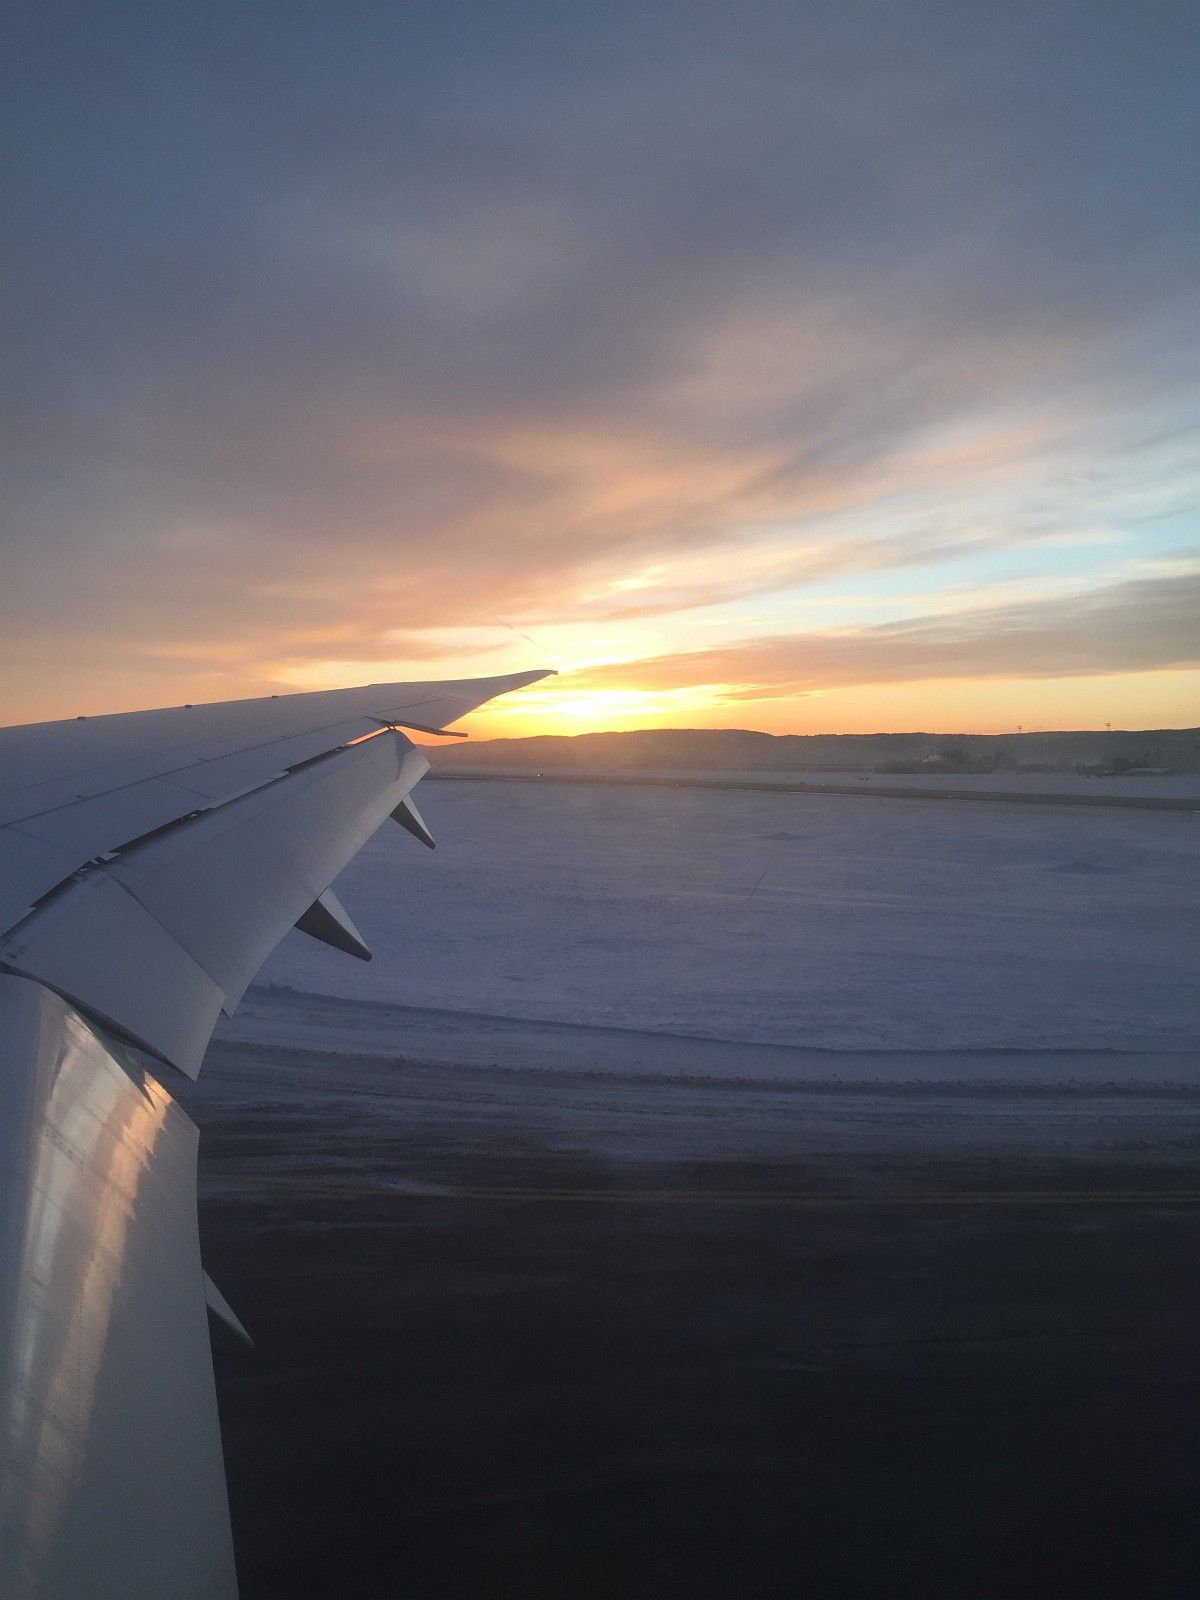 Berlin Schonefeldt - OSlo 23.01.2018(Norwegian) - Ski  - 1 ticket flying with Norwegian from Berlin to Oslo on Tuesday 23.01.2018 leaving at 09.50 in the morning arriving at 11.30 in Oslo :) 